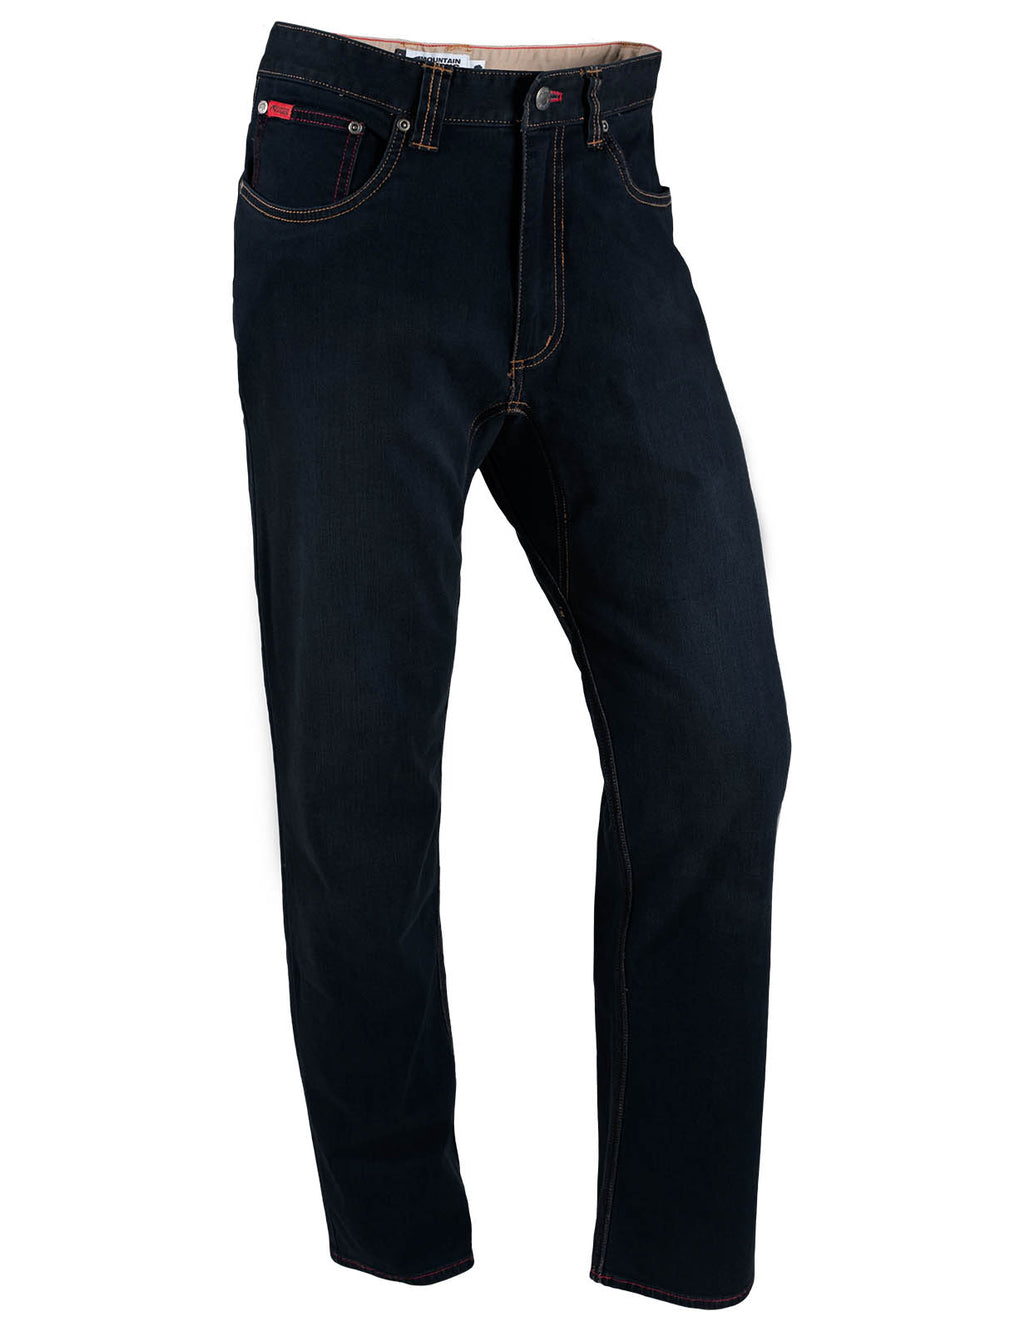 Men's 307 Jean | Classic Fit / Dark Wash